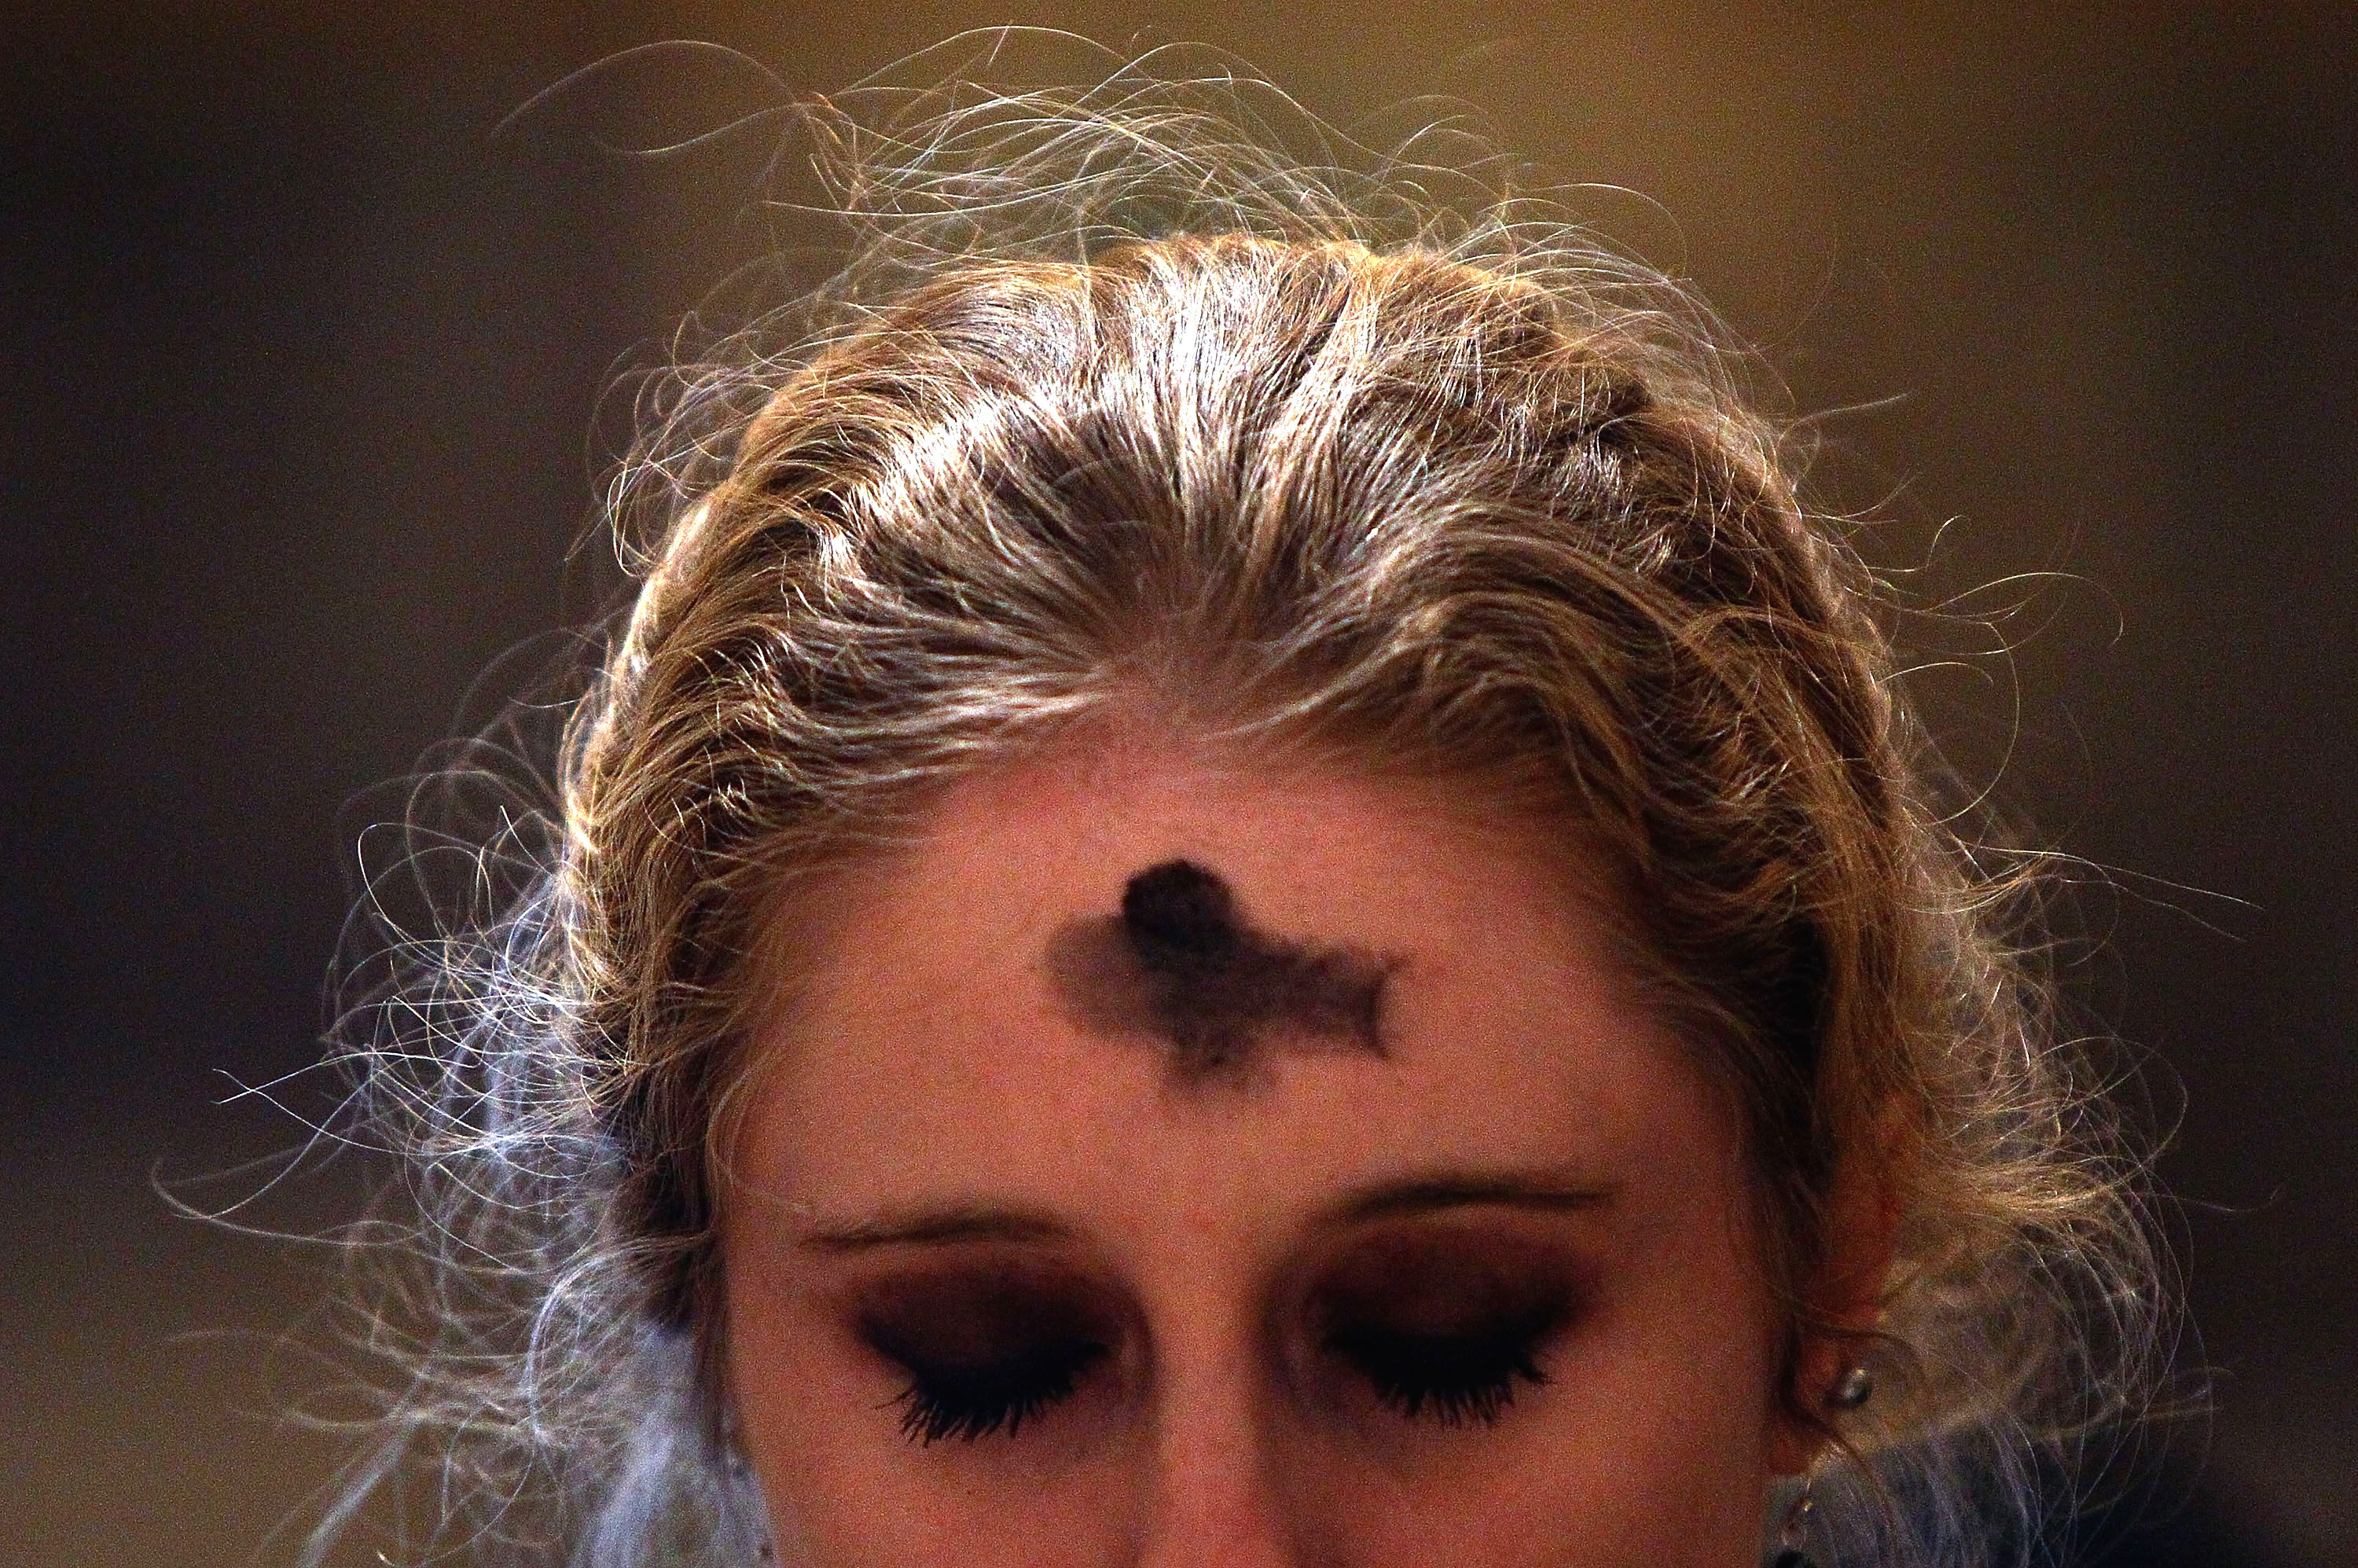 ash catholic singles This year, february 14th isn't just valentine's day it's also ash wednesday, an ancient religious holiday that, for catholics, is one of the holiest days of the year ash wednesday is known.